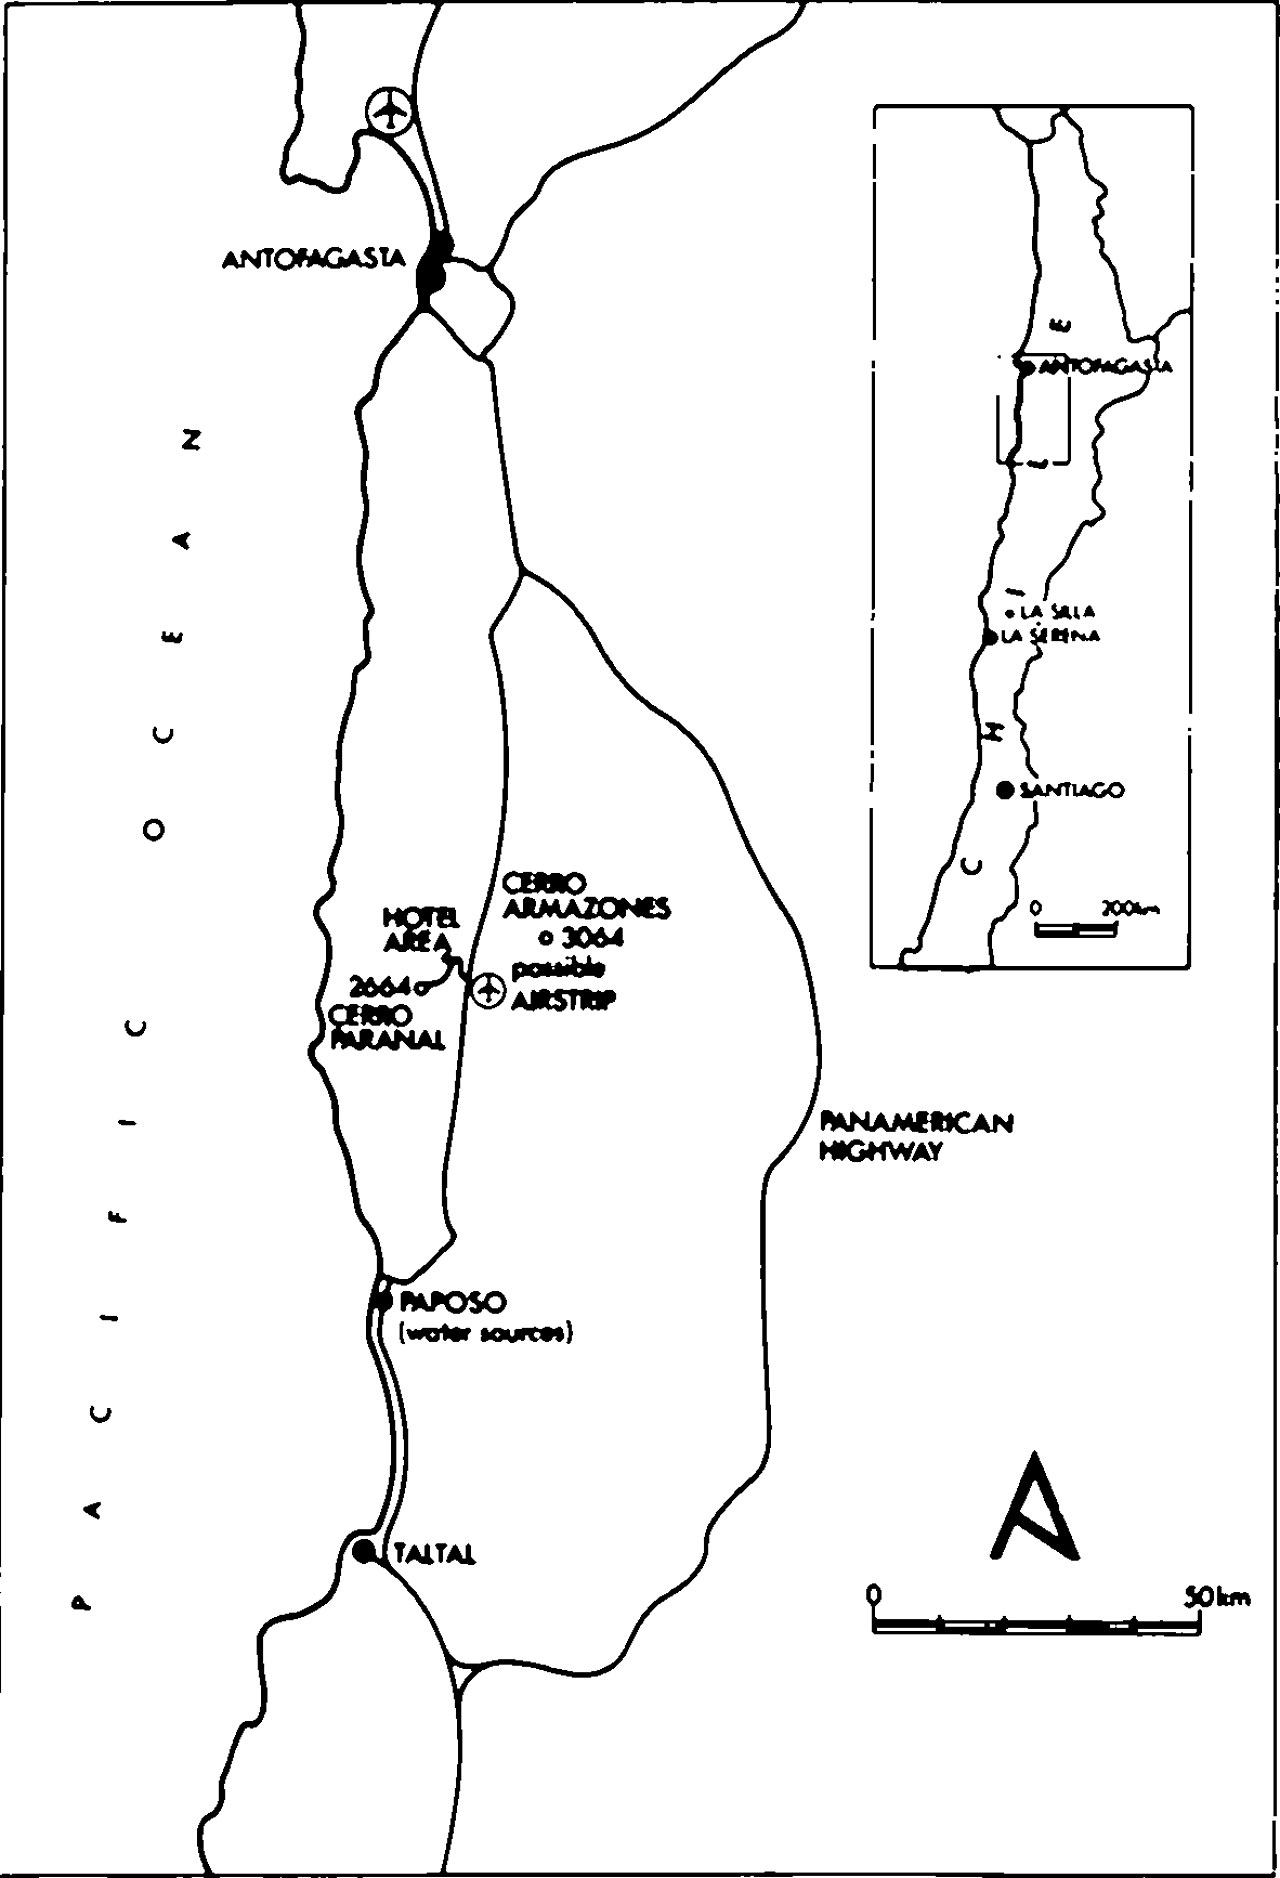 A map of northern Chile, with the location of Cerro Paranal indicated